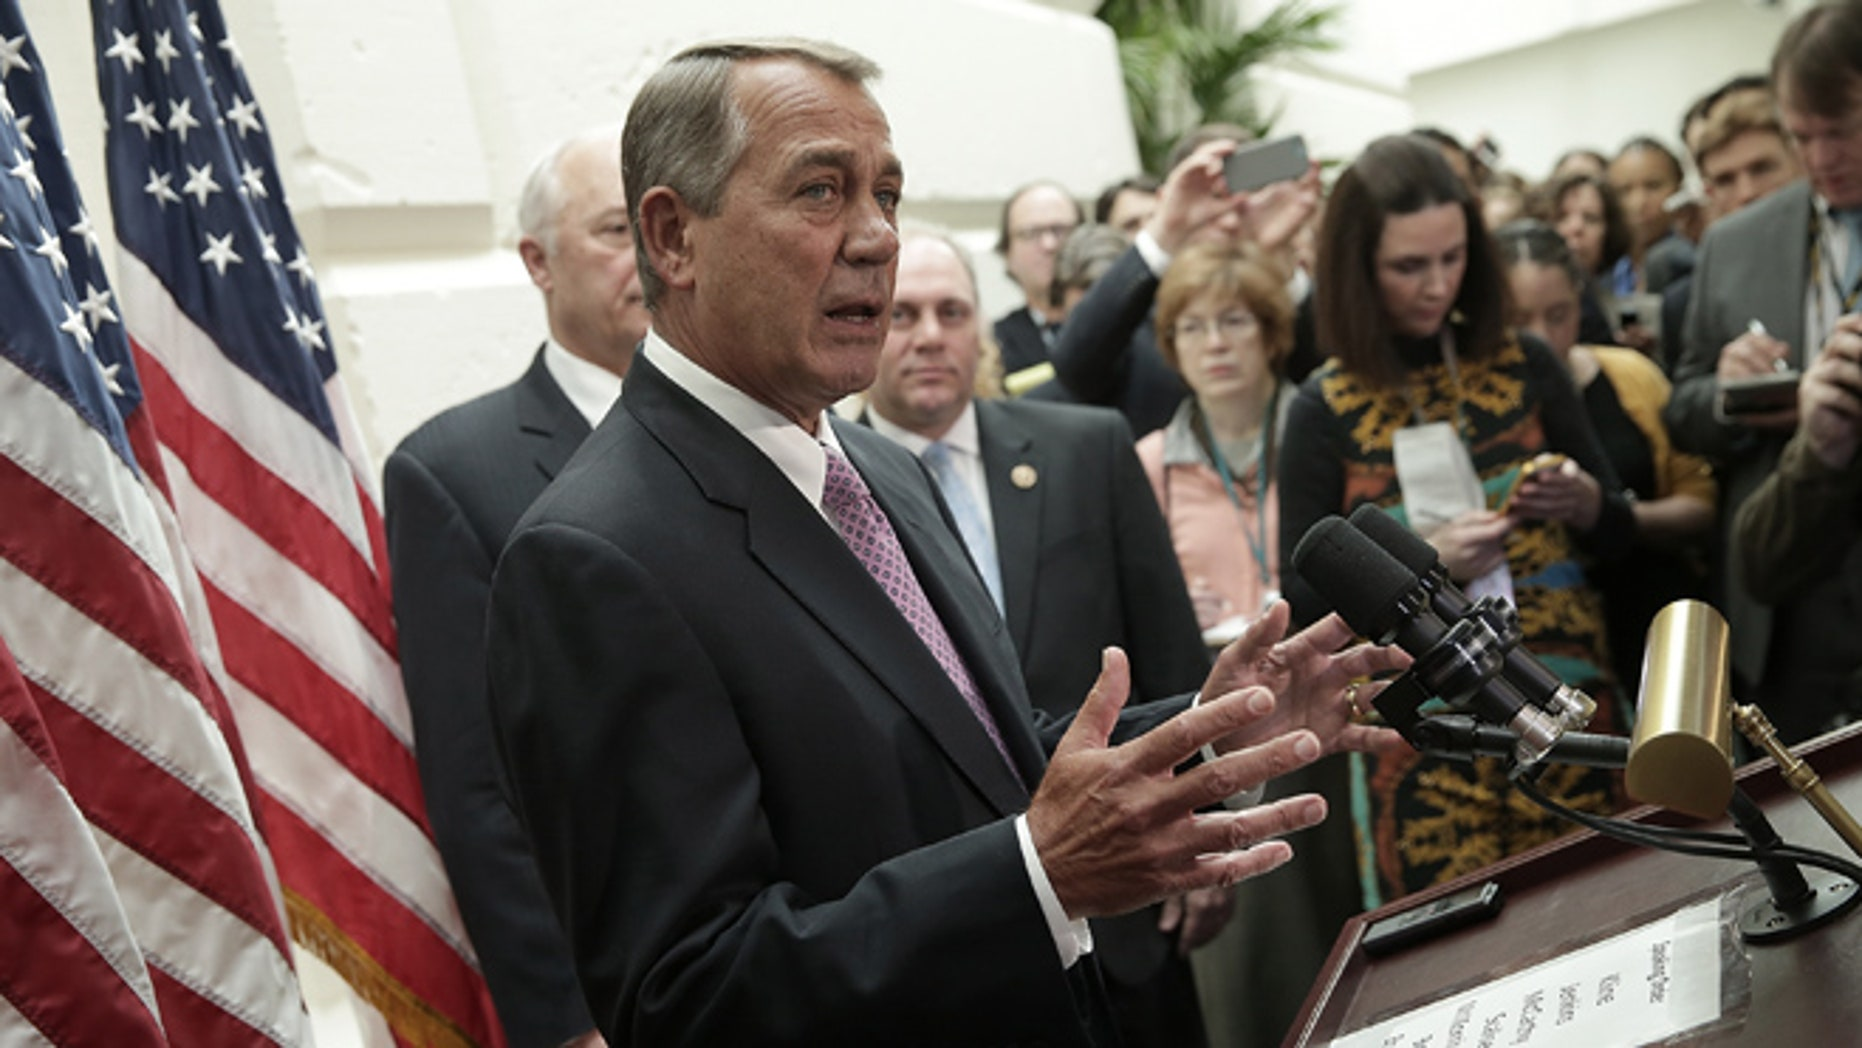 WASHINGTON, DC - FEBRUARY 25:  Speaker of the House John Boehner (R-OH) answers questions during a press conference following the weekly House Republican conference meeting at the U.S. Capitol February 25, 2015 in Washington, DC. With Department of Homeland Security funding set to expire on Friday of this week, Boehner and House Republican leadership faced numerous questions on a possible shutdown of DHS if a compromise is not reached with Democratic members of Congress.  (Photo by Win McNamee/Getty Images)